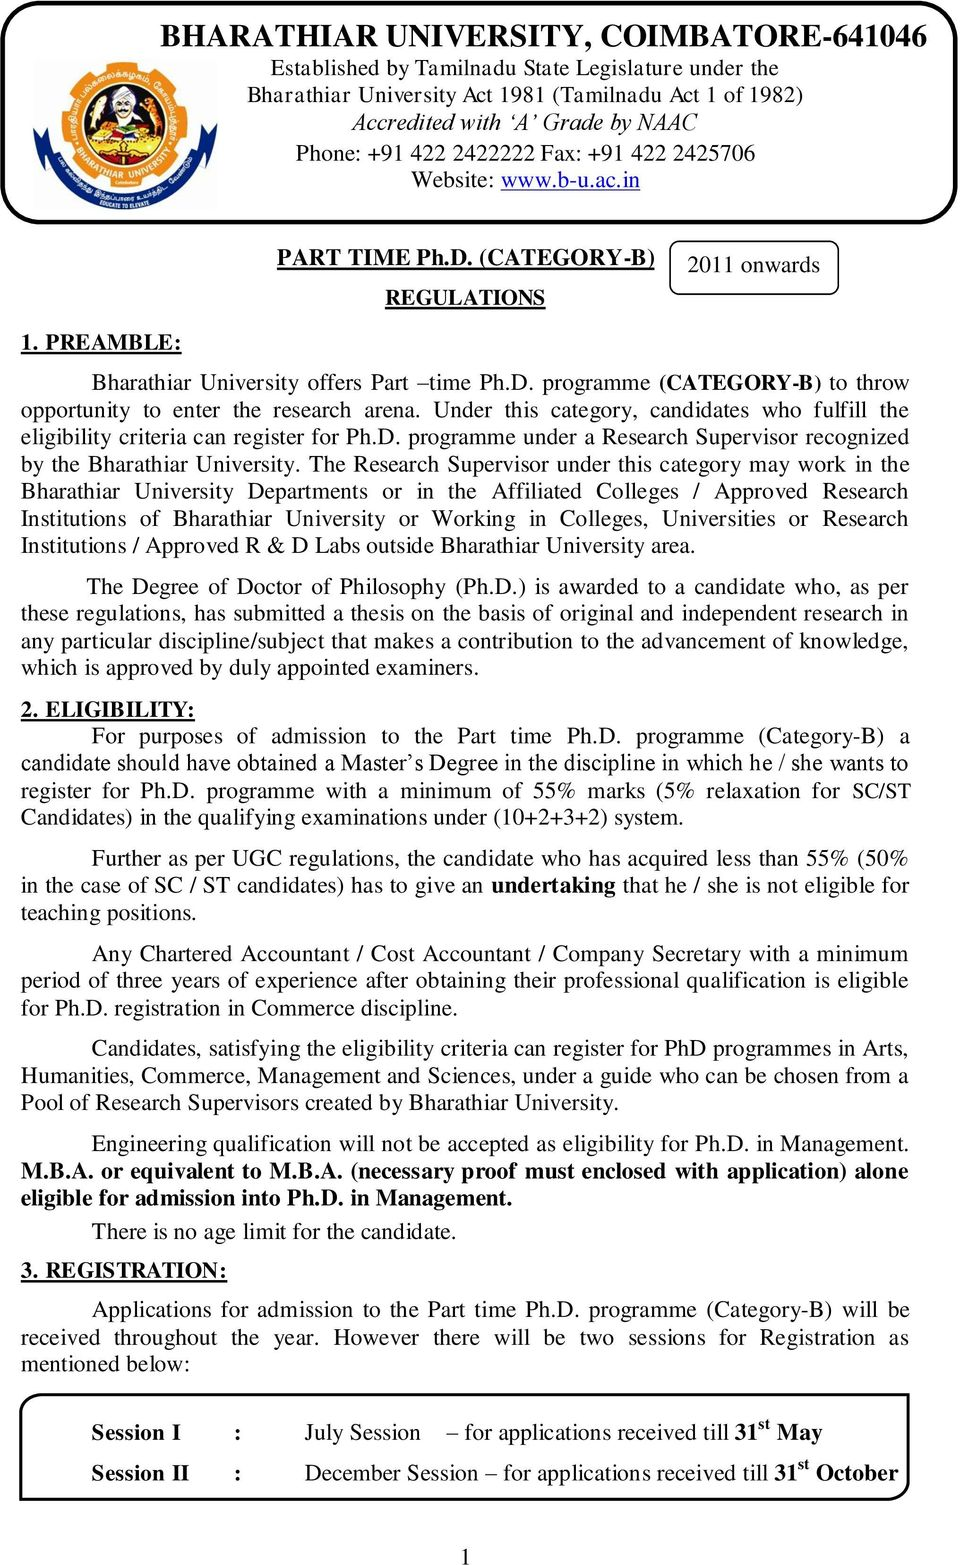 phd thesis submission form bharathiar university